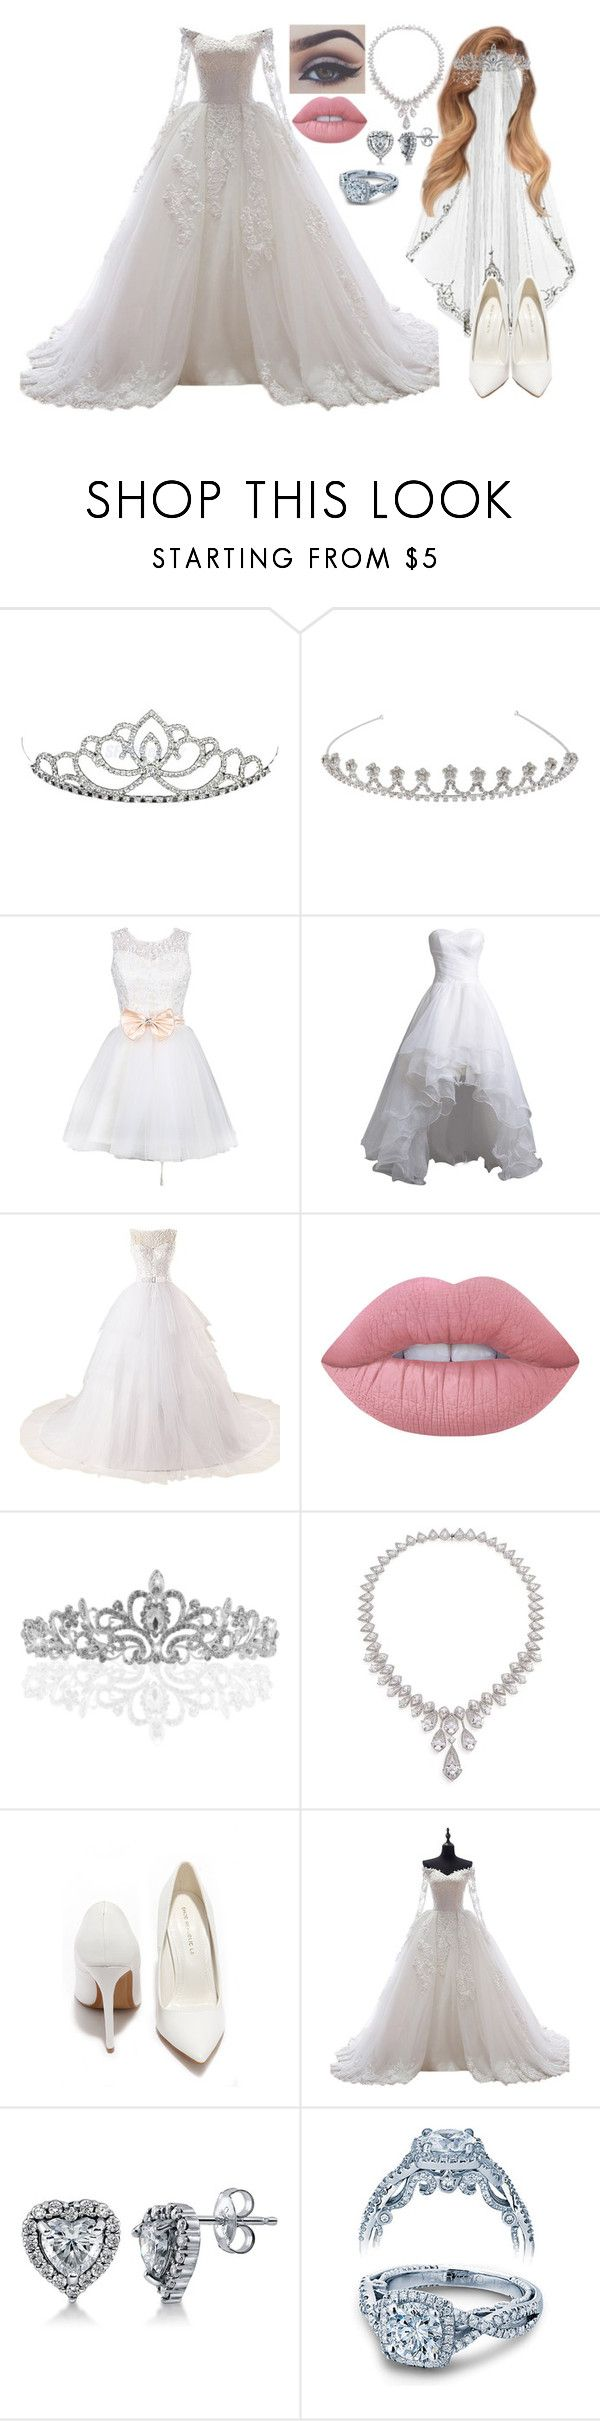 """""""Untitled #922"""" by skh-siera18 ❤ liked on Polyvore featuring John Lewis, Miya, Bellezza, Guide London, Lime Crime, Adriana Orsini, Shoe Republic LA, BERRICLE and Verragio"""